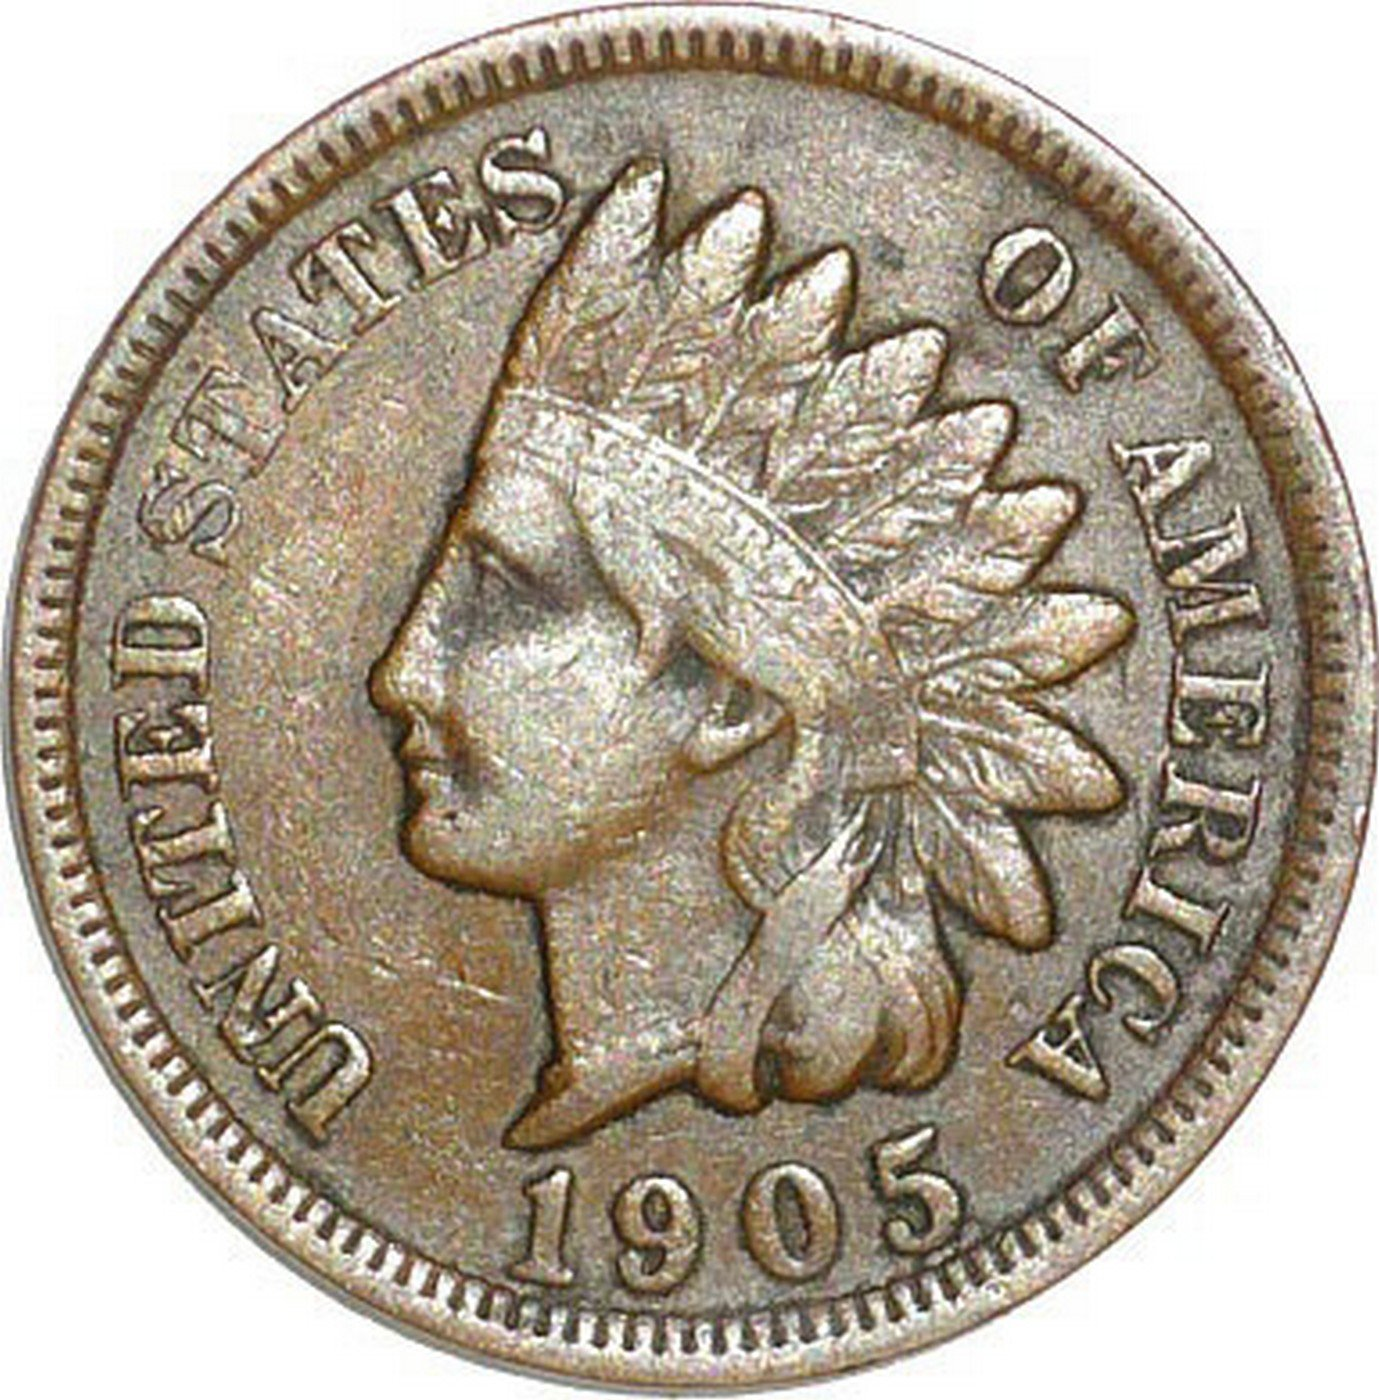 1905 Obverse of CUD-004 - Indian Head Cent - Photo by David Poliquin